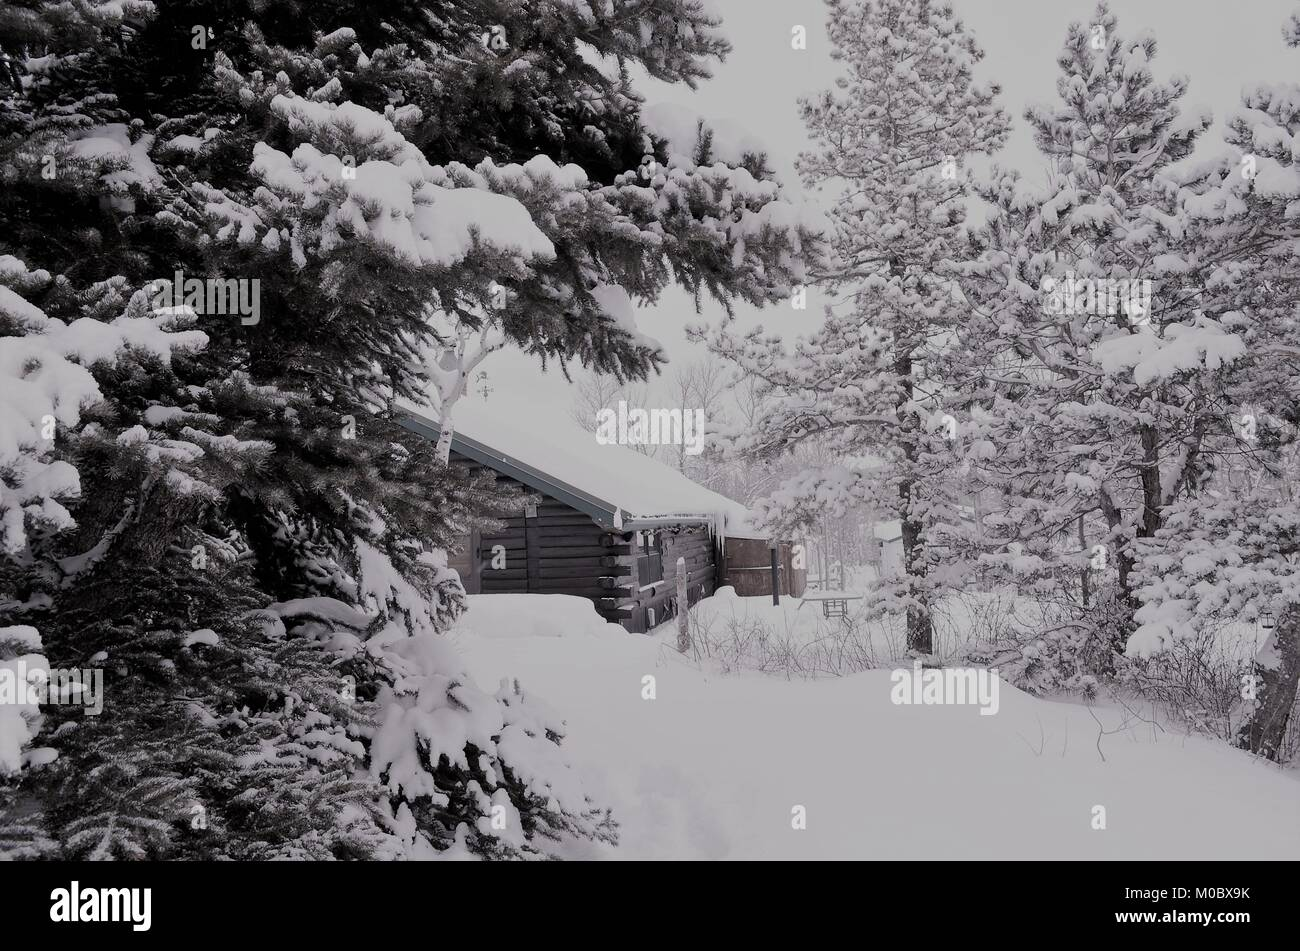 A  log cabin in the mountains at Christmas time, after a heavy snow fall occurred, covering everything with a thick - Stock Image